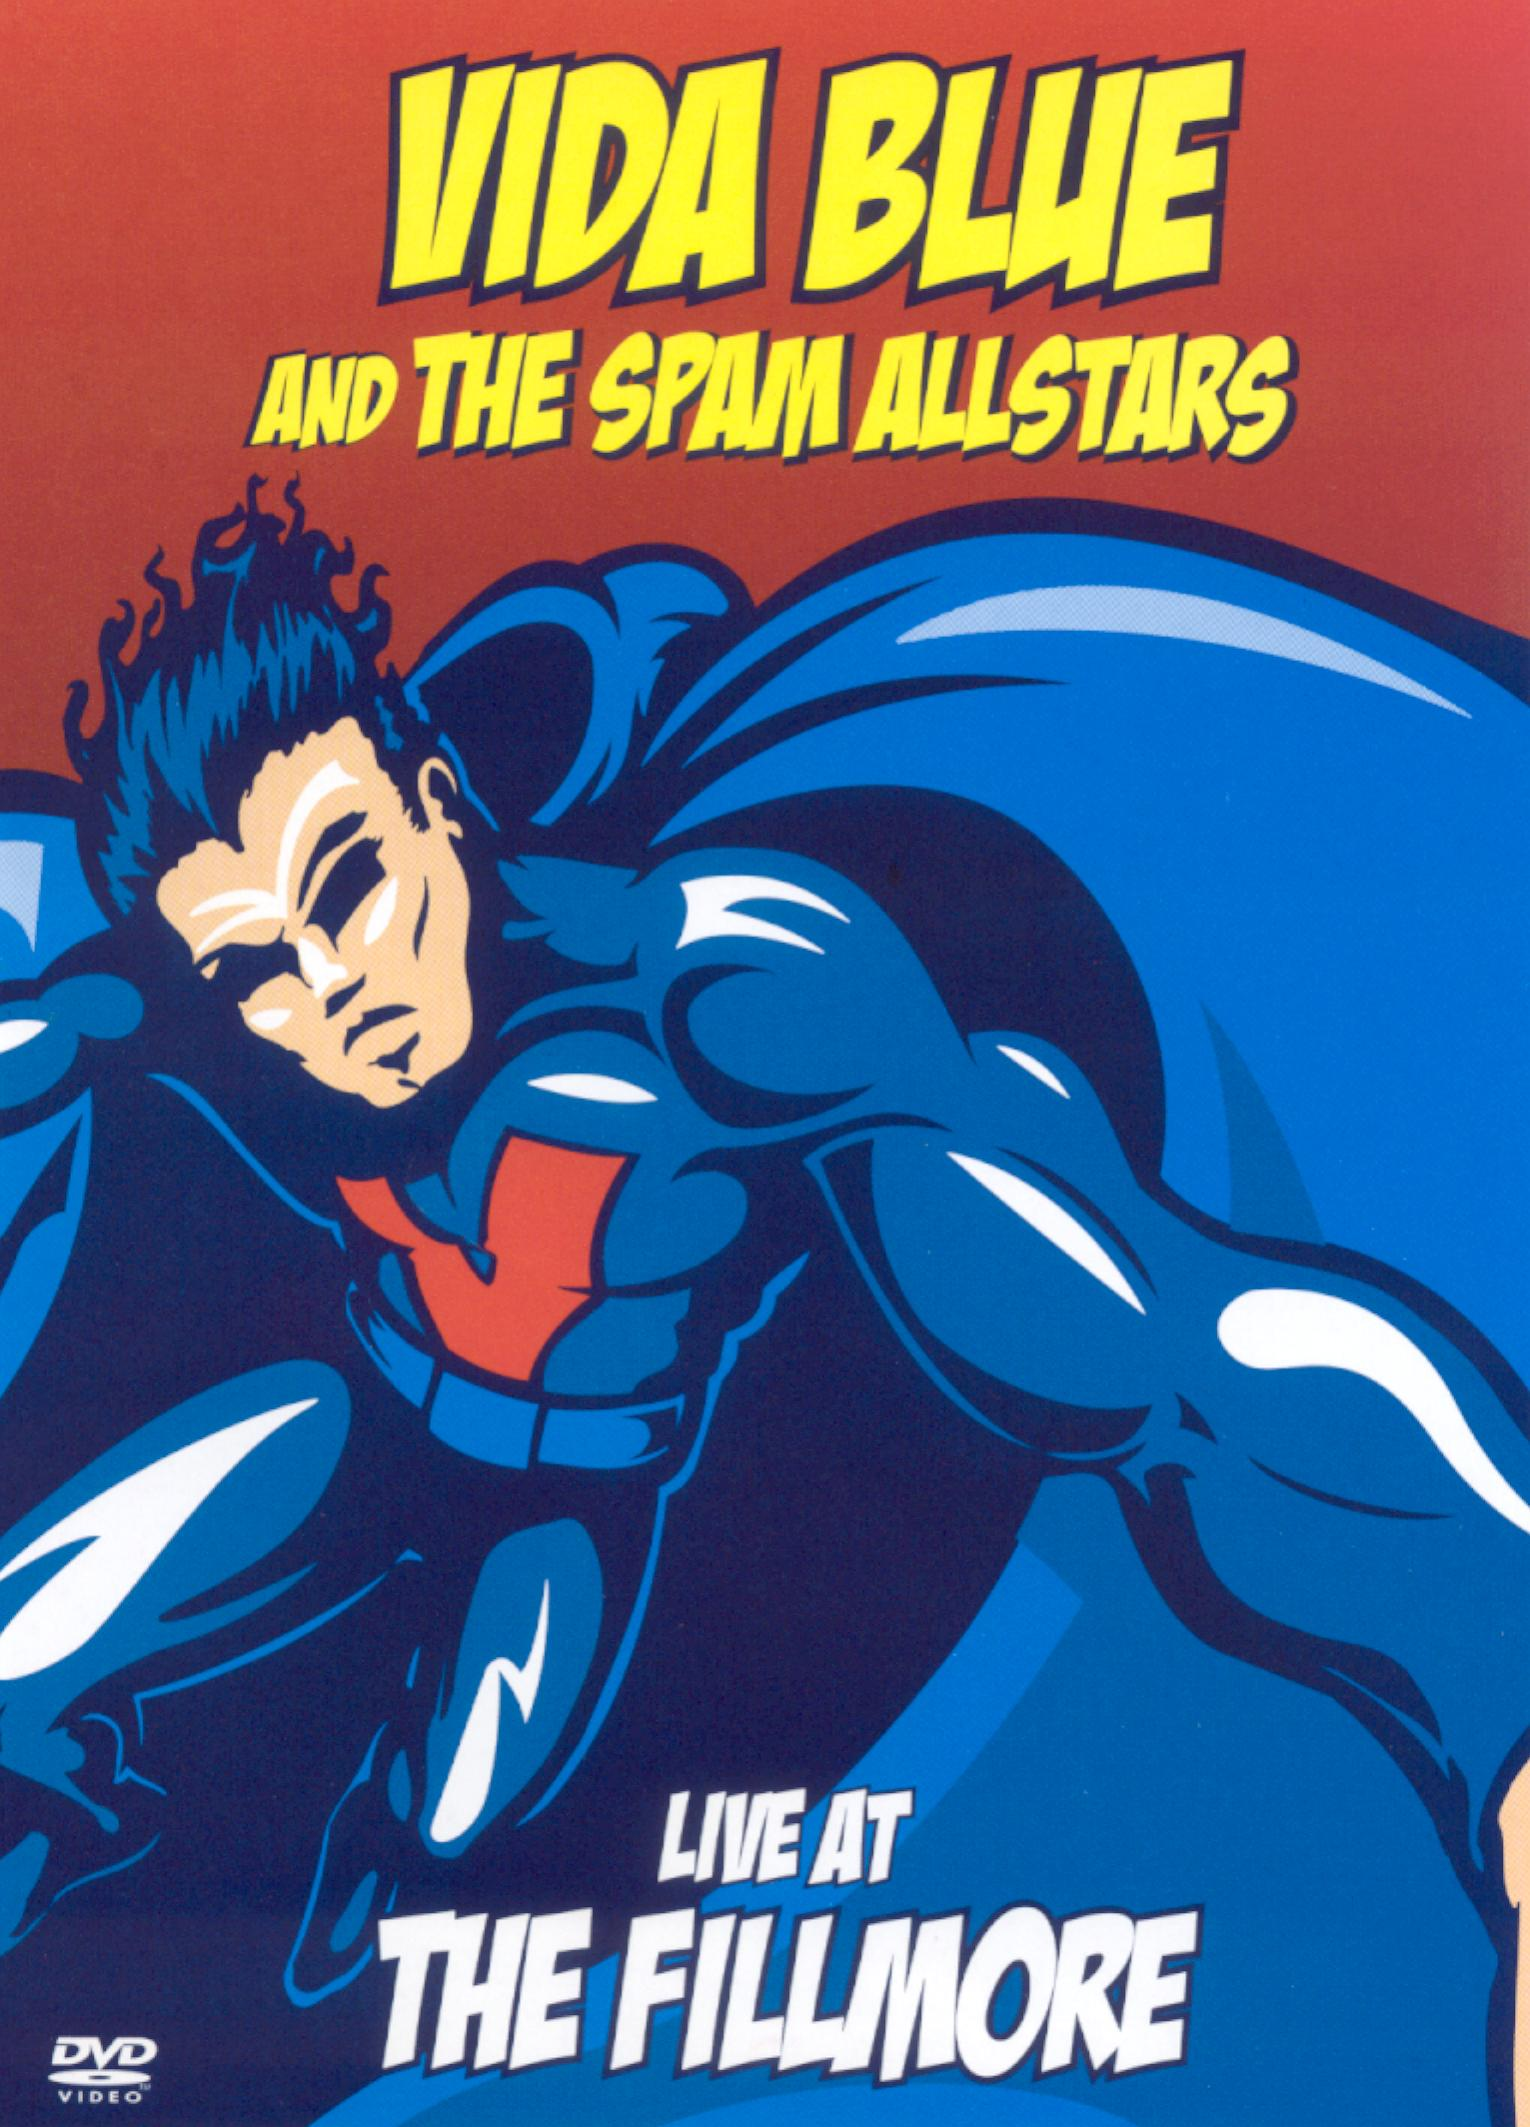 Vida Blue and the Spam Allstars: Live at the Fillmore